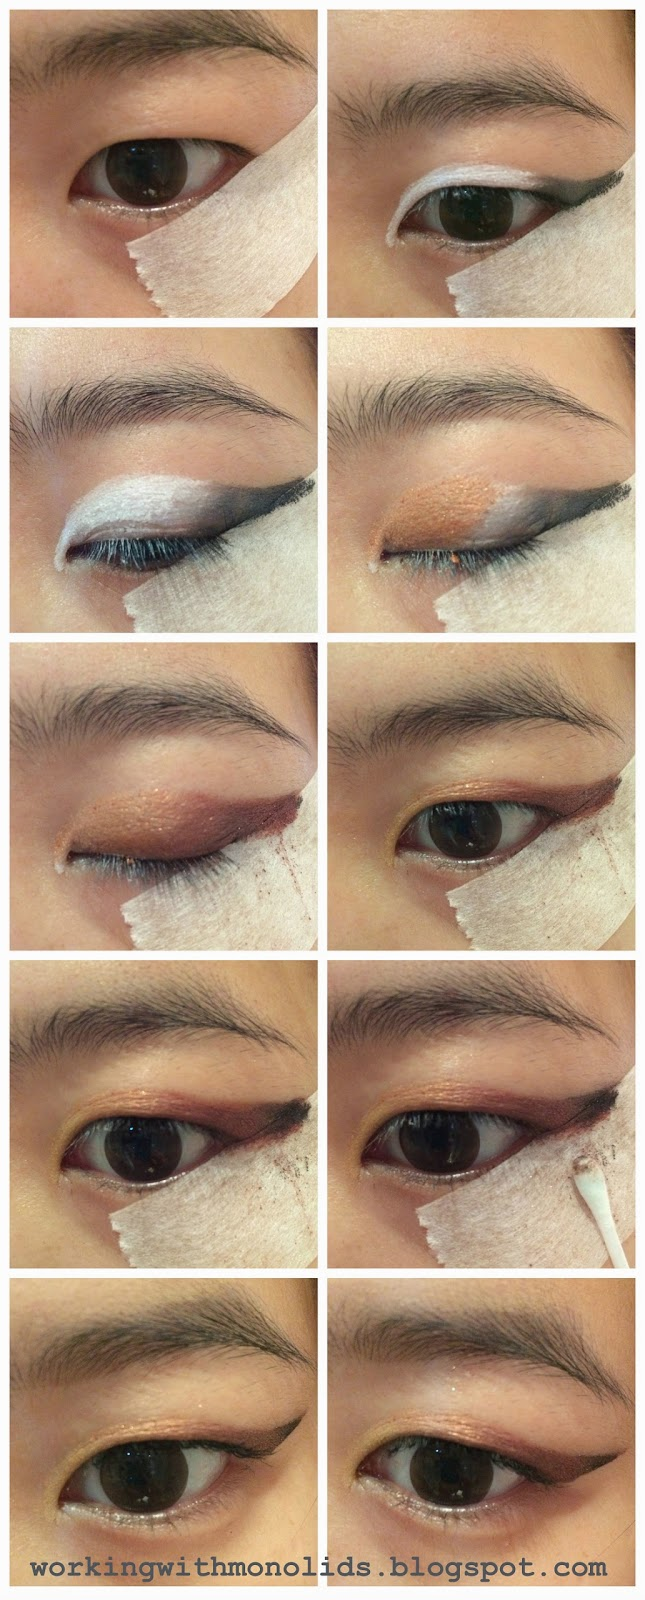 monolid makeup tutorial, single eyelid tutorial